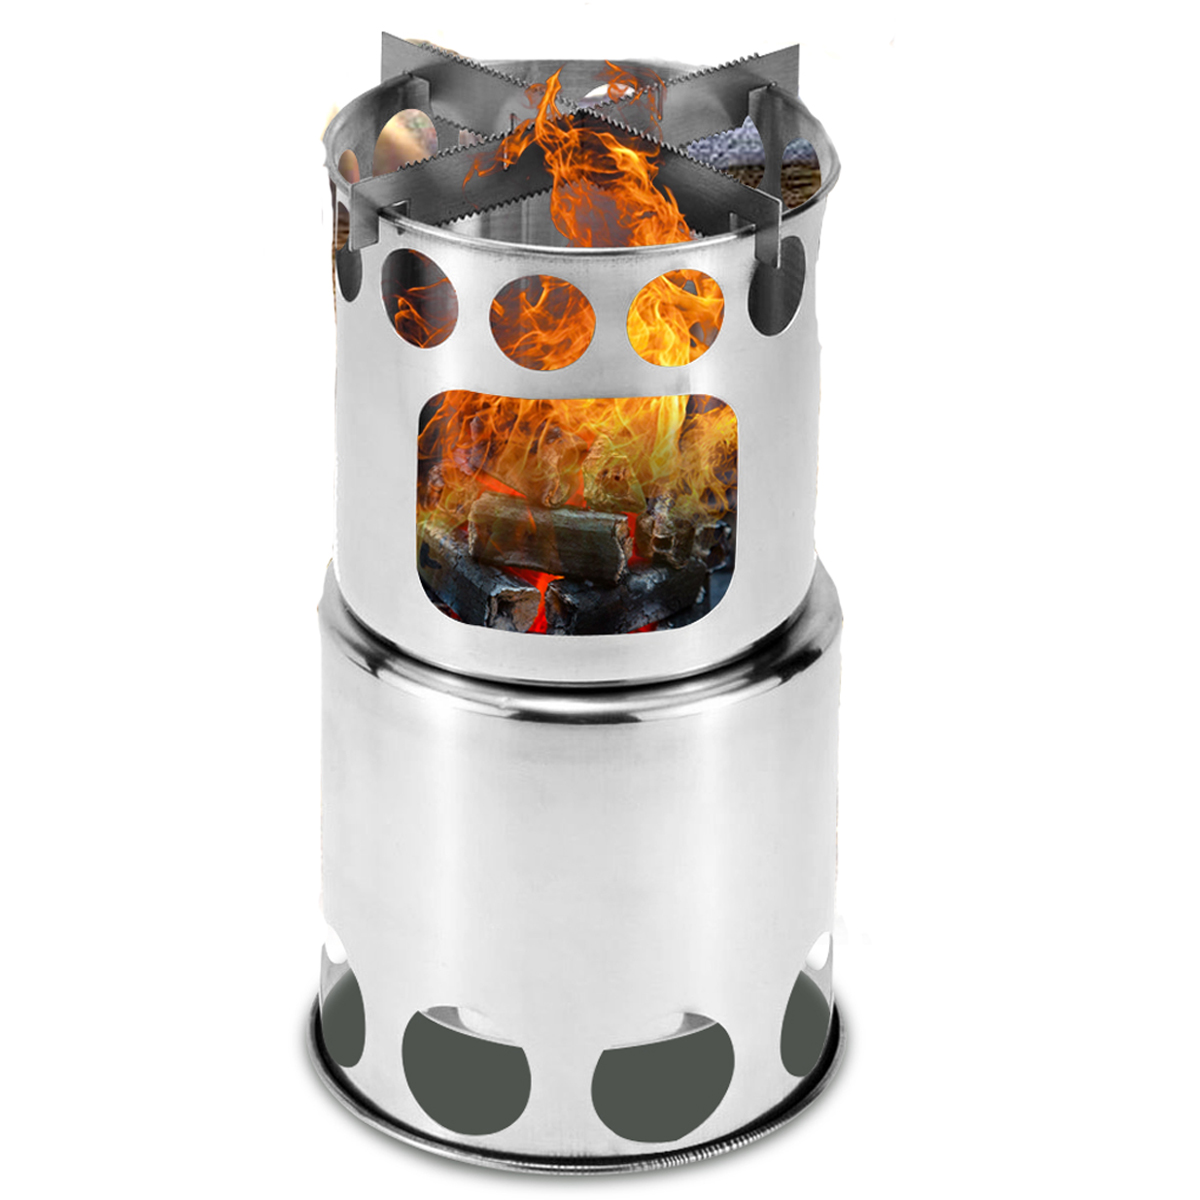 Stoves Burners Amp Gas Cylinders Outdoor Camping Picnic